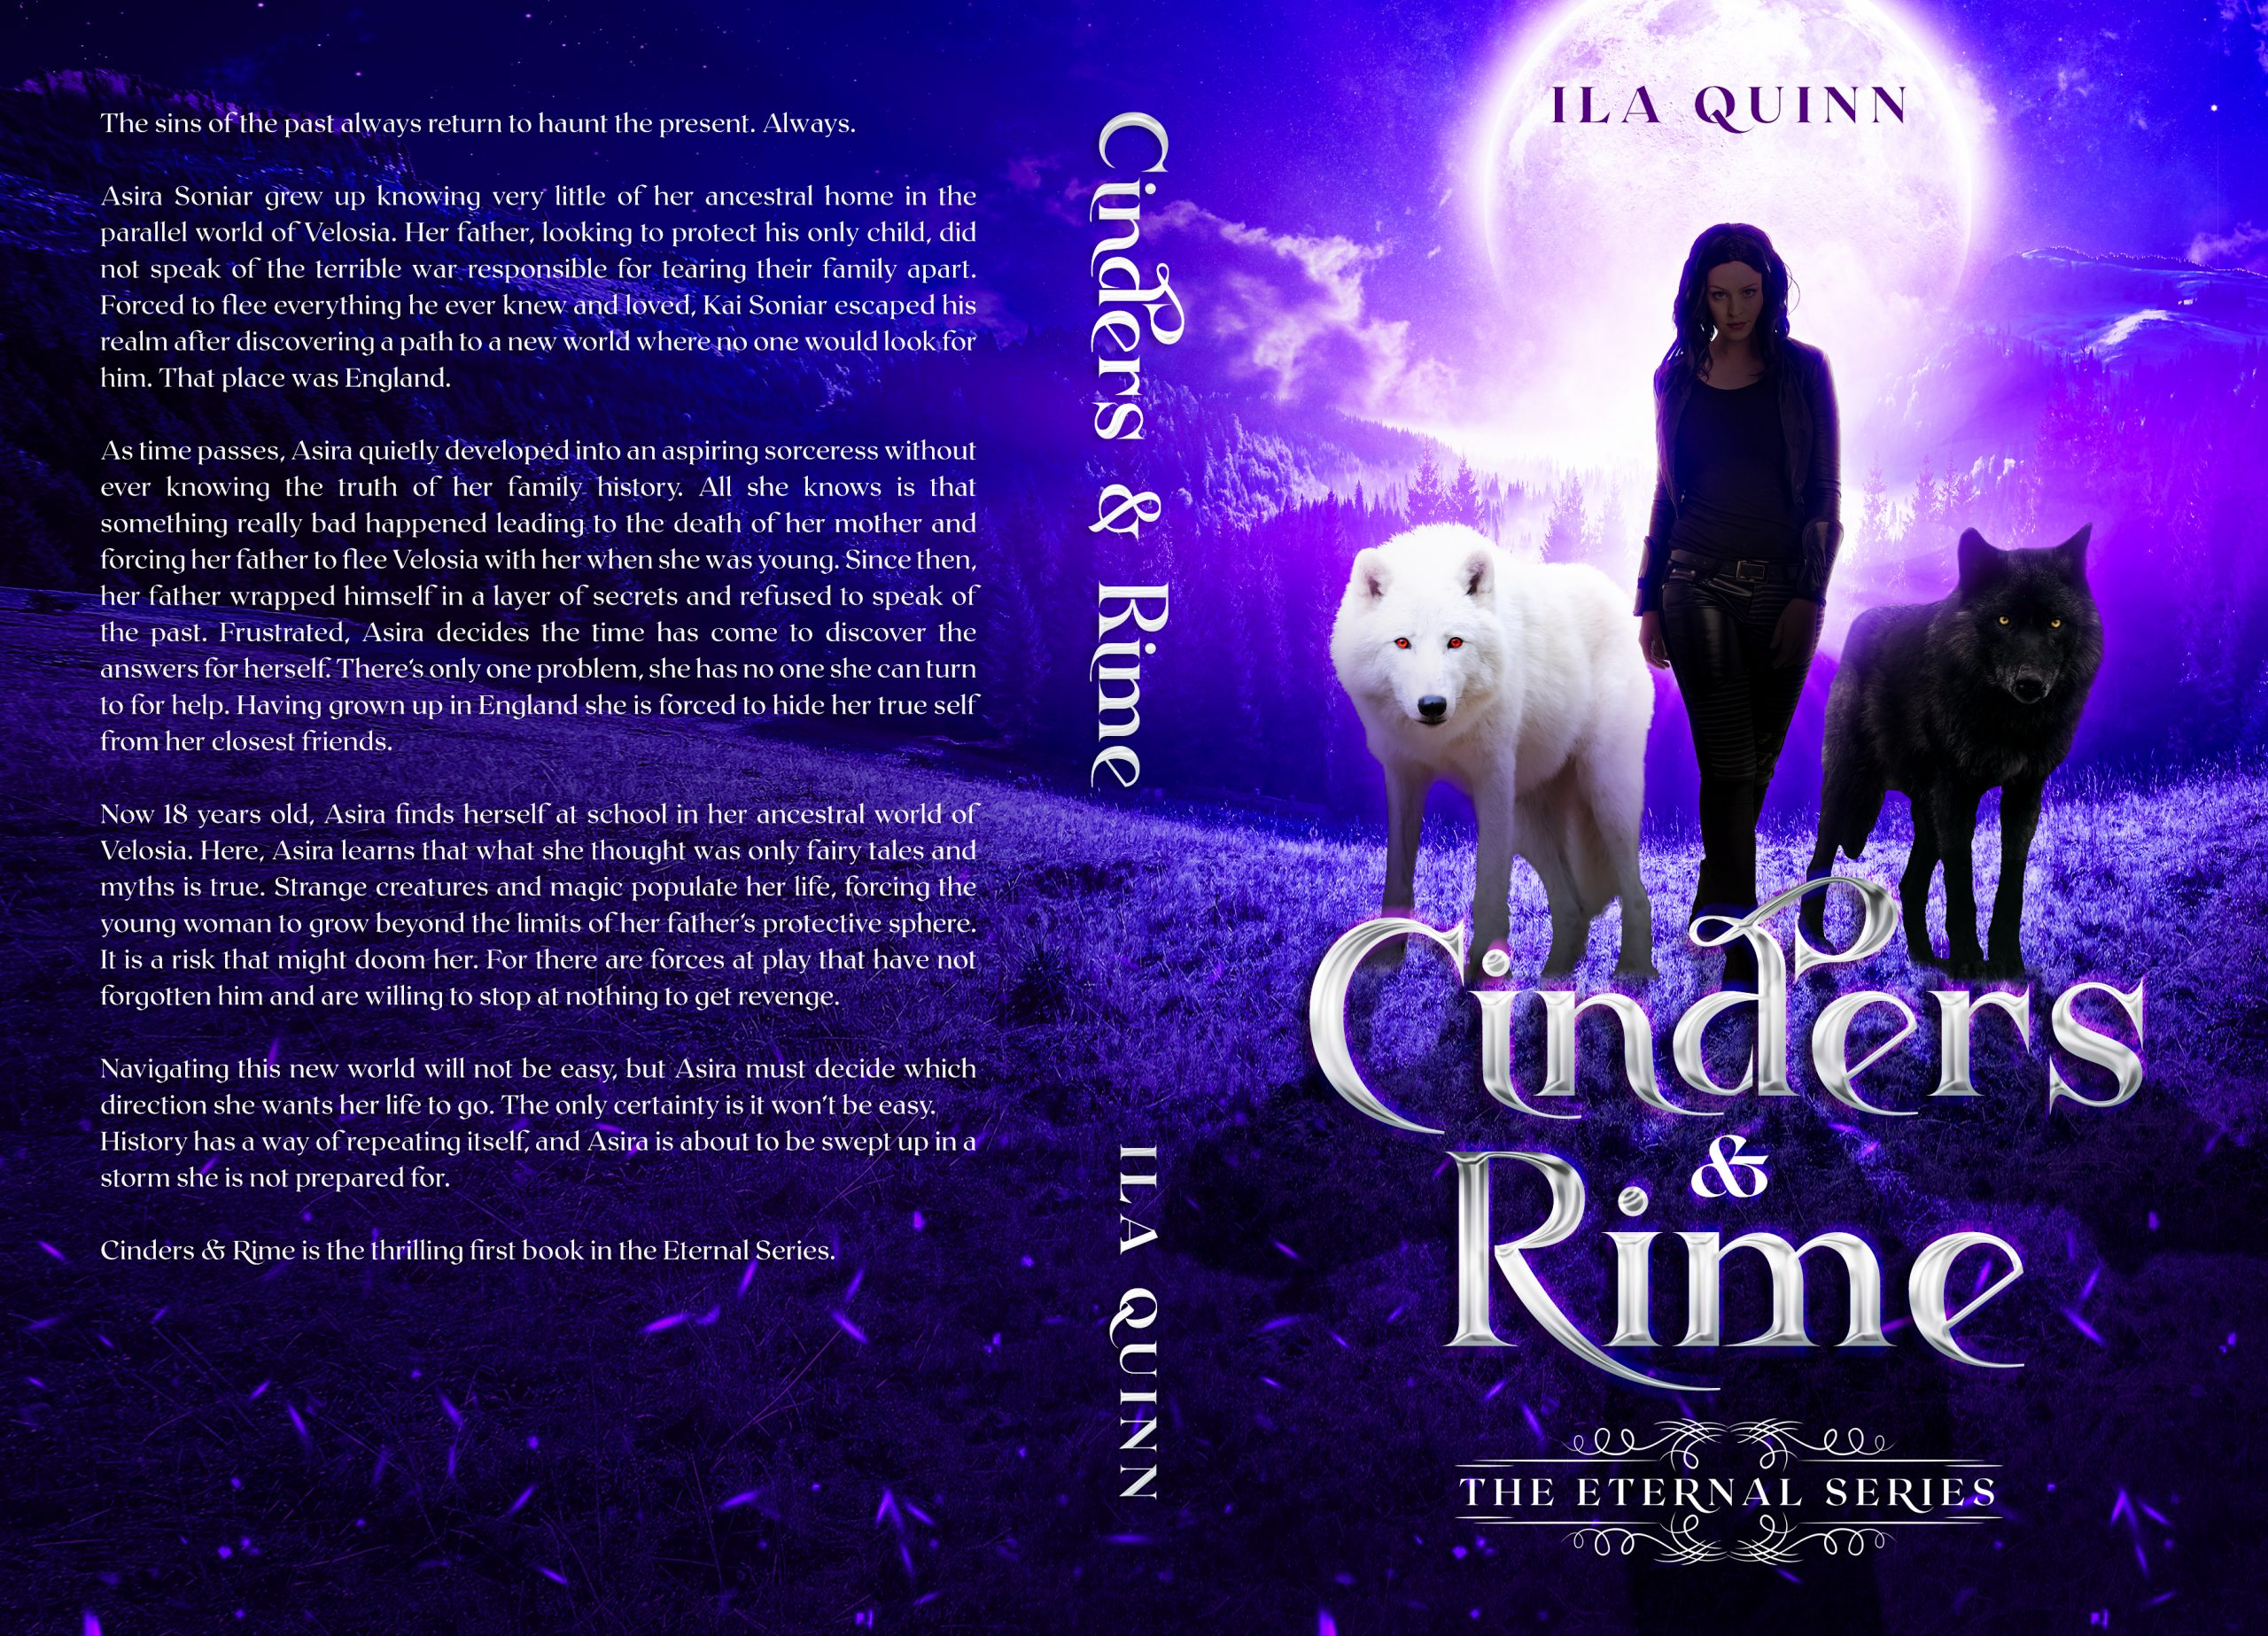 Of Cinders and Rime